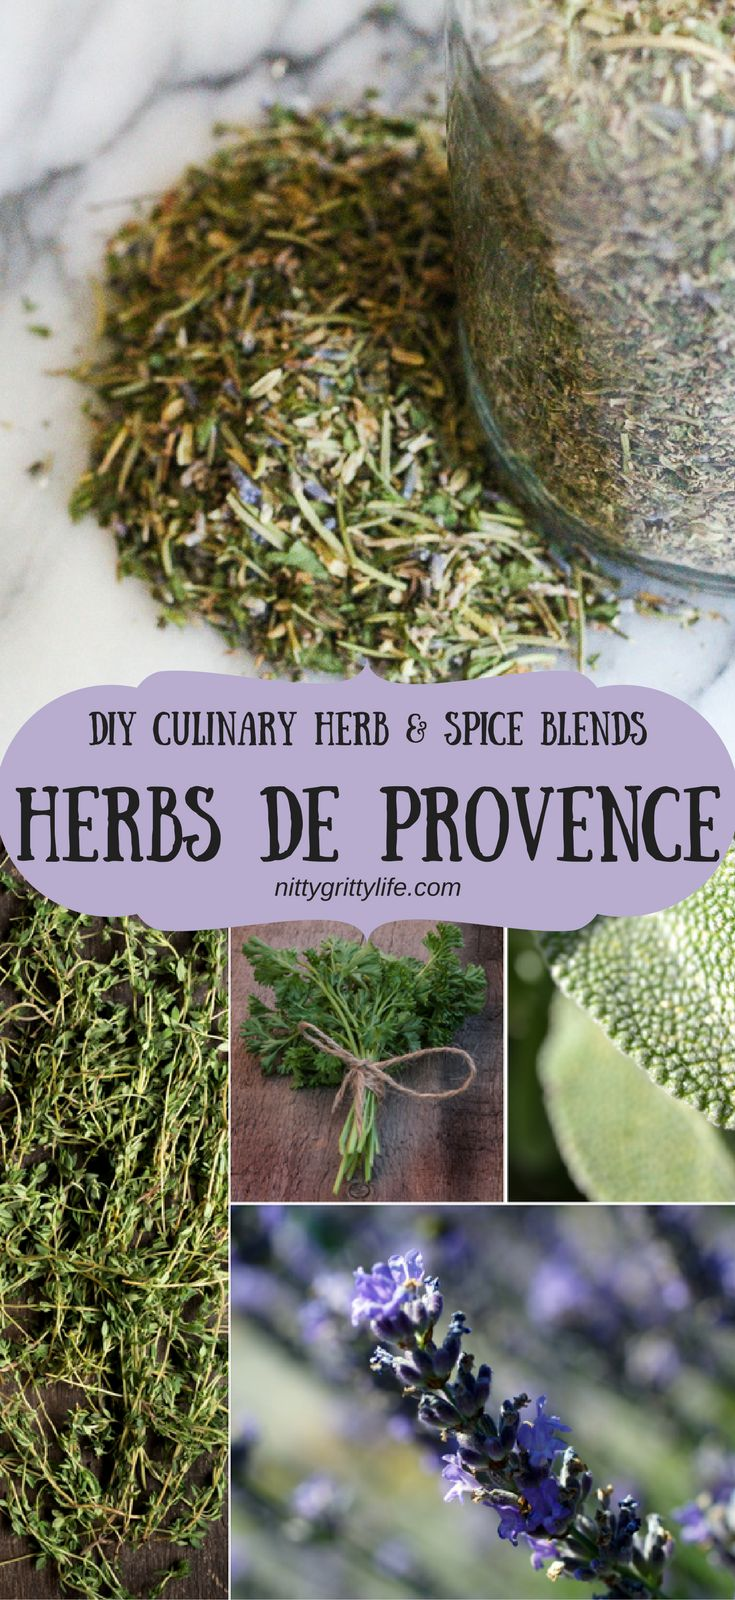 Herbs de Provence is a wonderful herbal blend that lends itself to a variety of dishes. This DIY blend will ensure that you've plenty for yourself & gifts! Use as needed for chicken, pork, egg and whatever other dishes call for its bright, savory flavor!